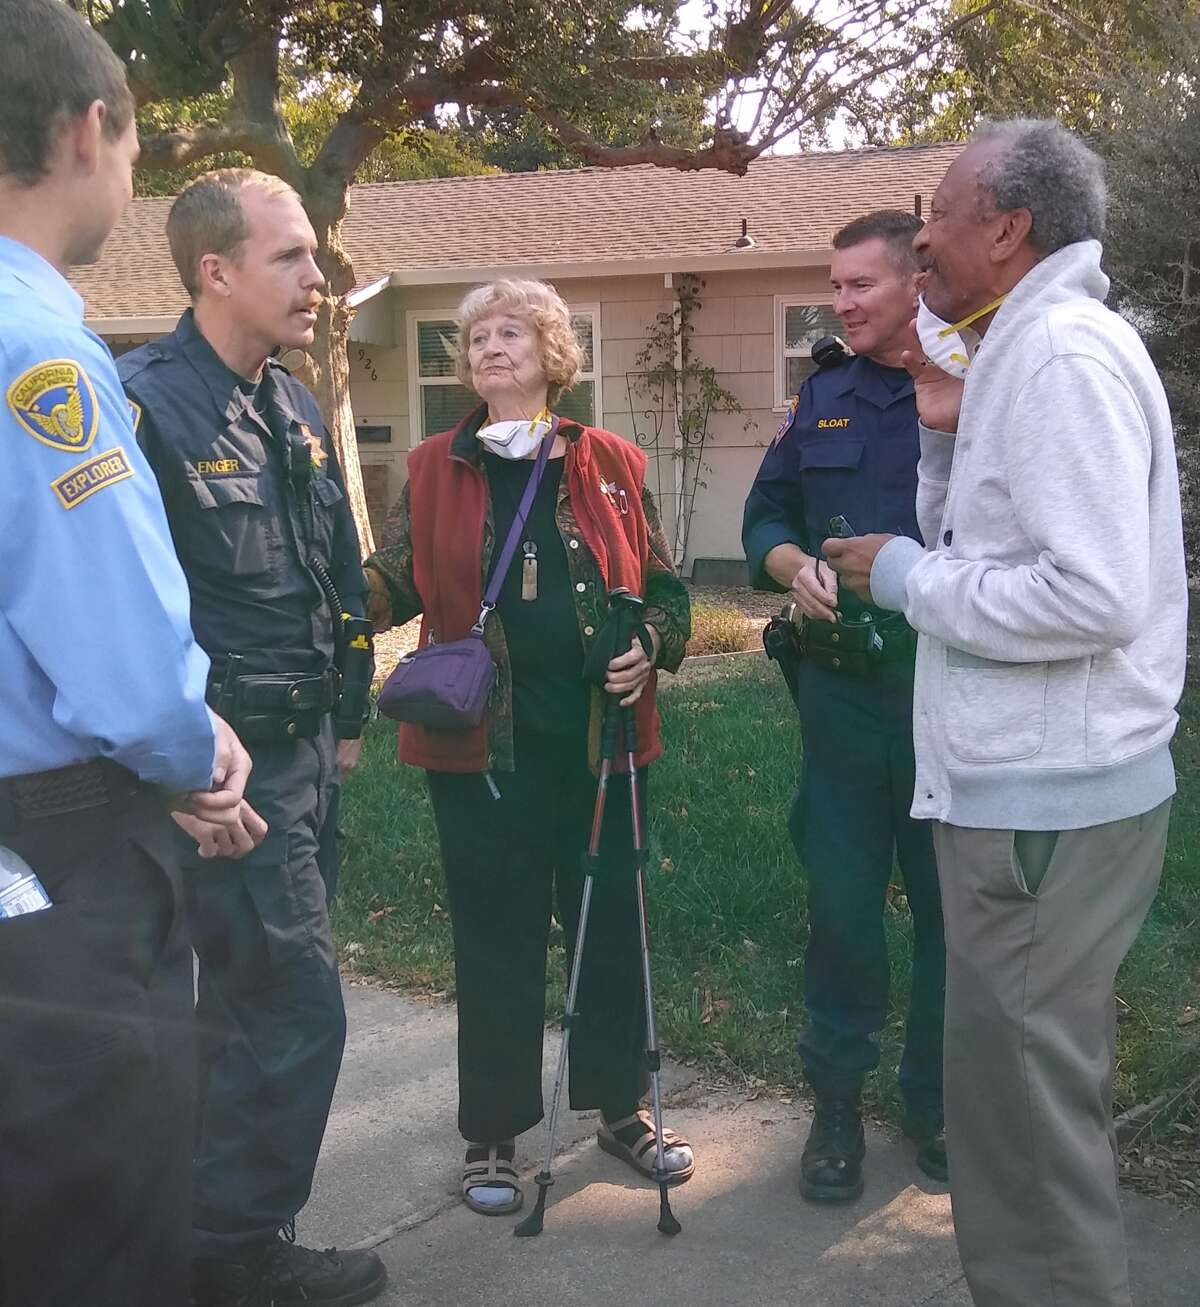 Sara and her husband greet officers after they bring her Subaru to safety.